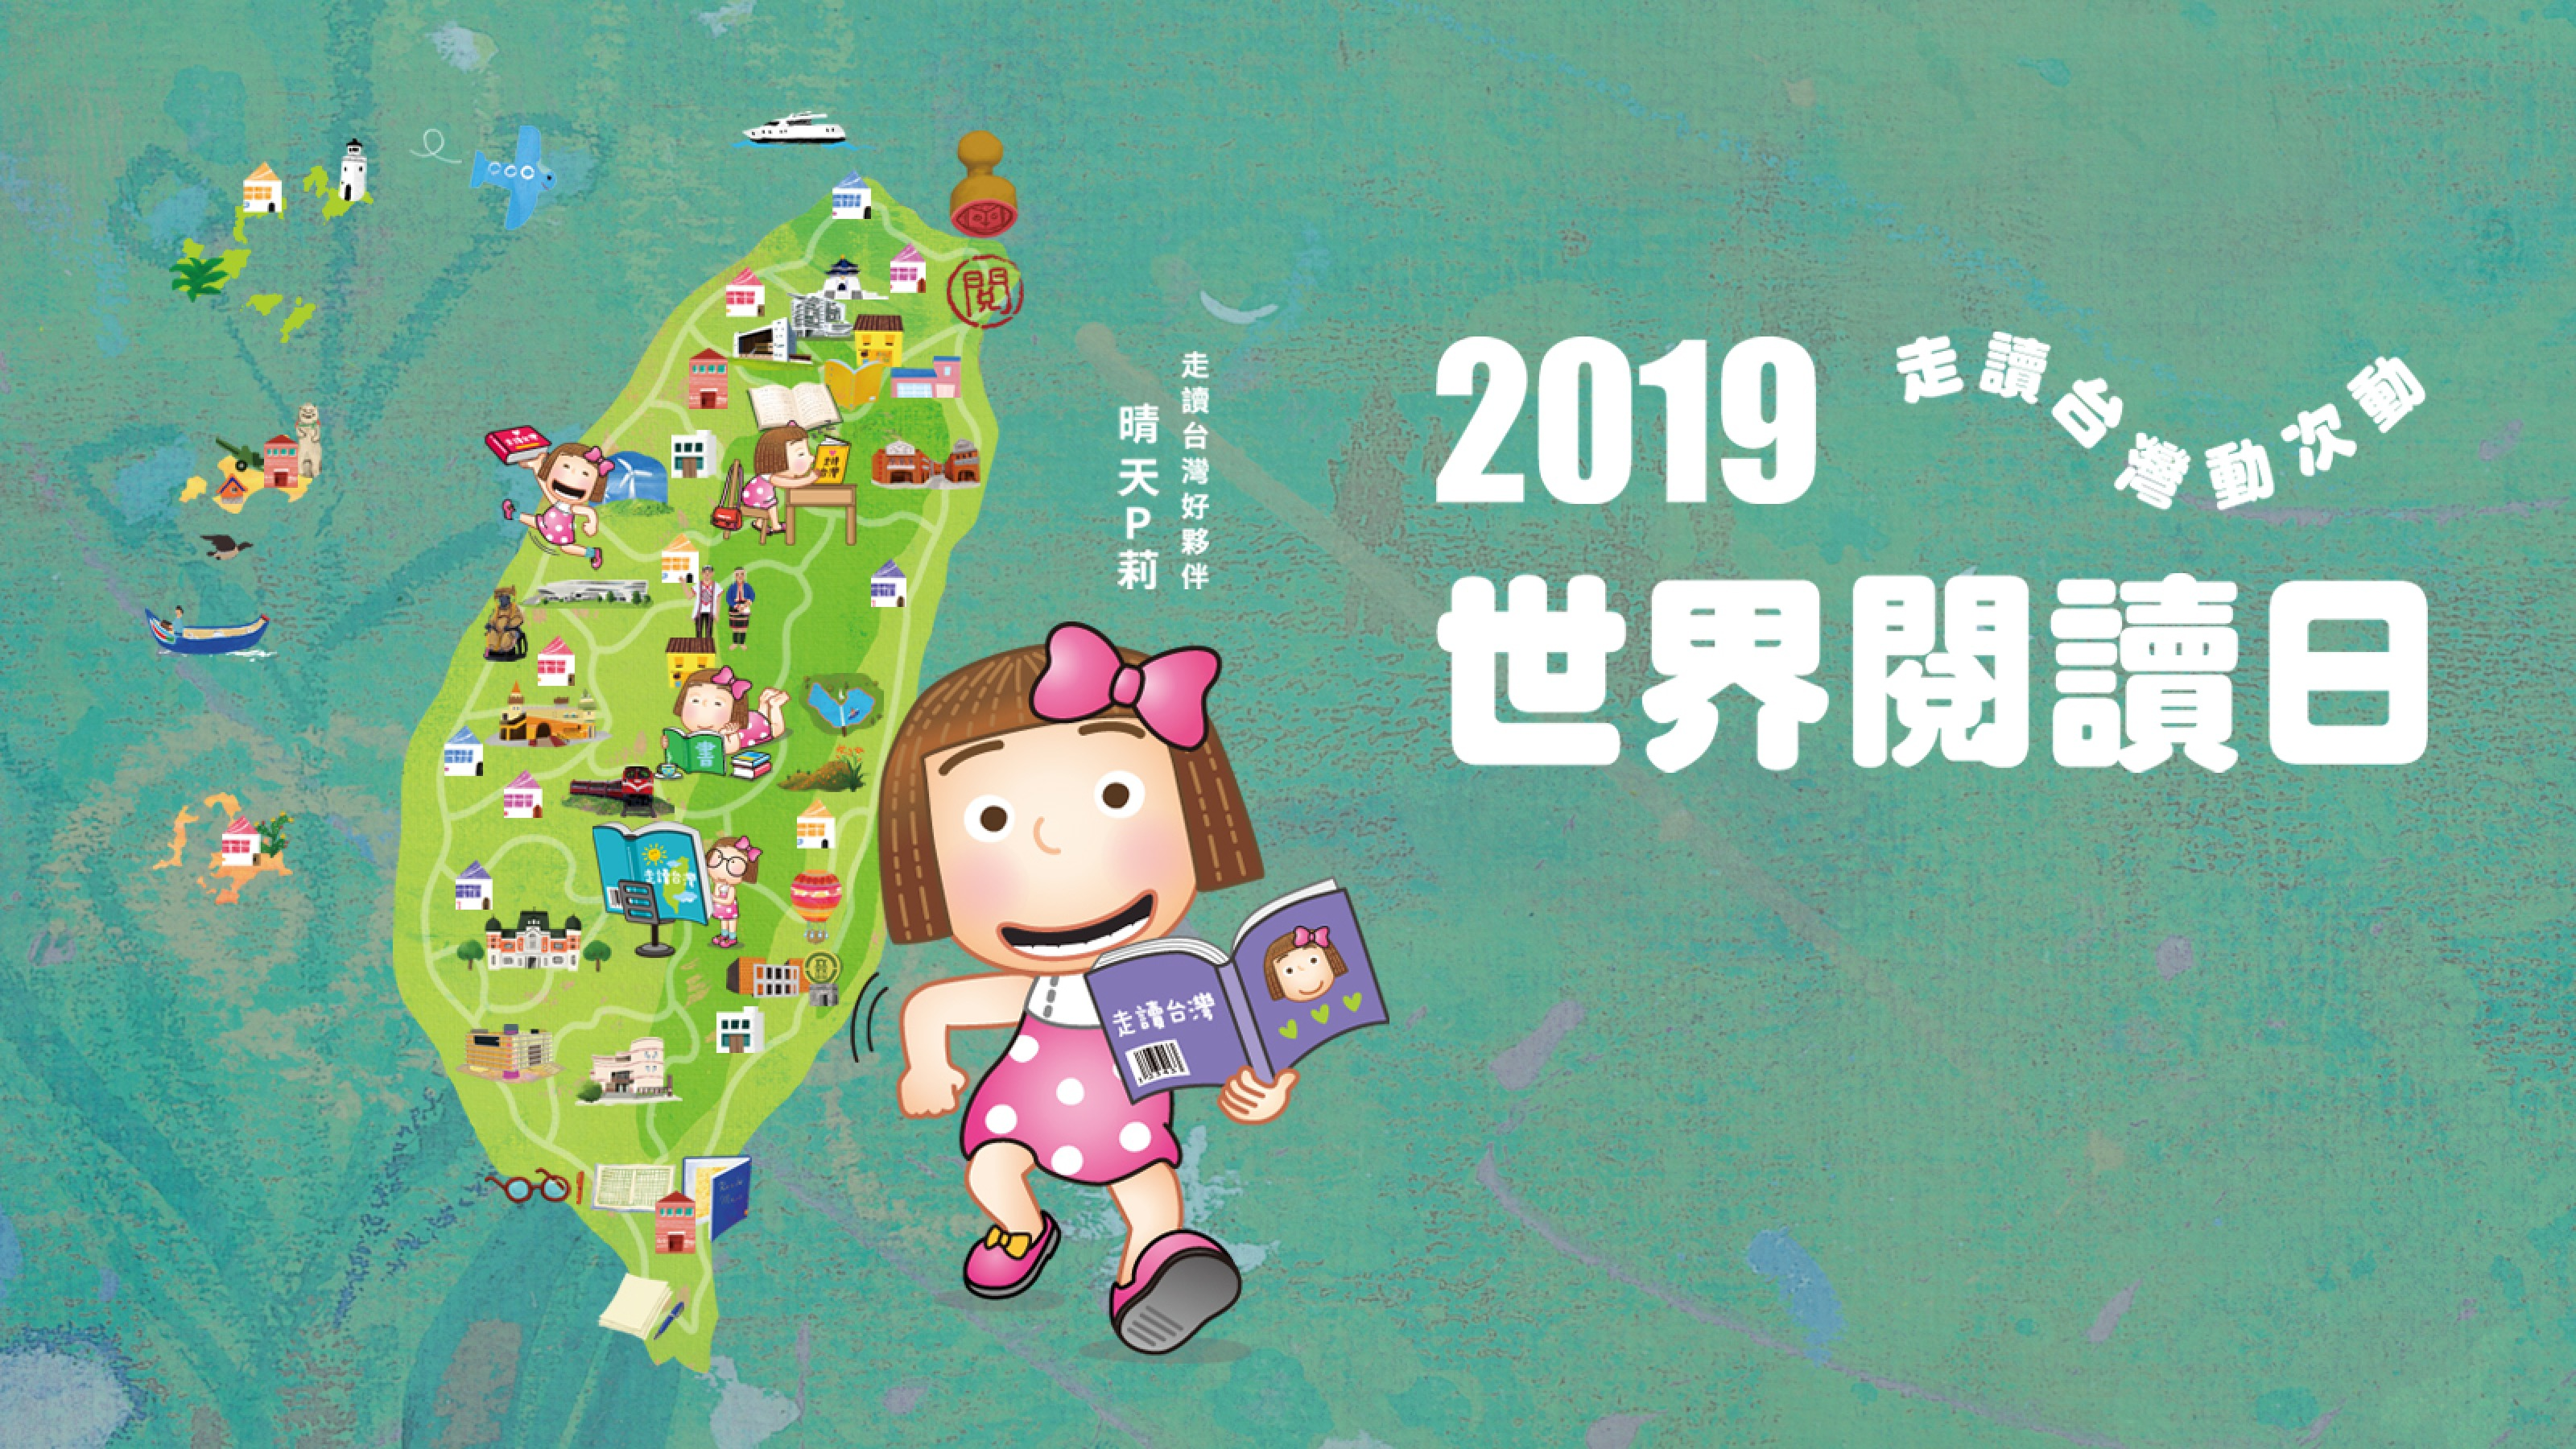 World Book Day to be celebrated in Taiwan with walking tours